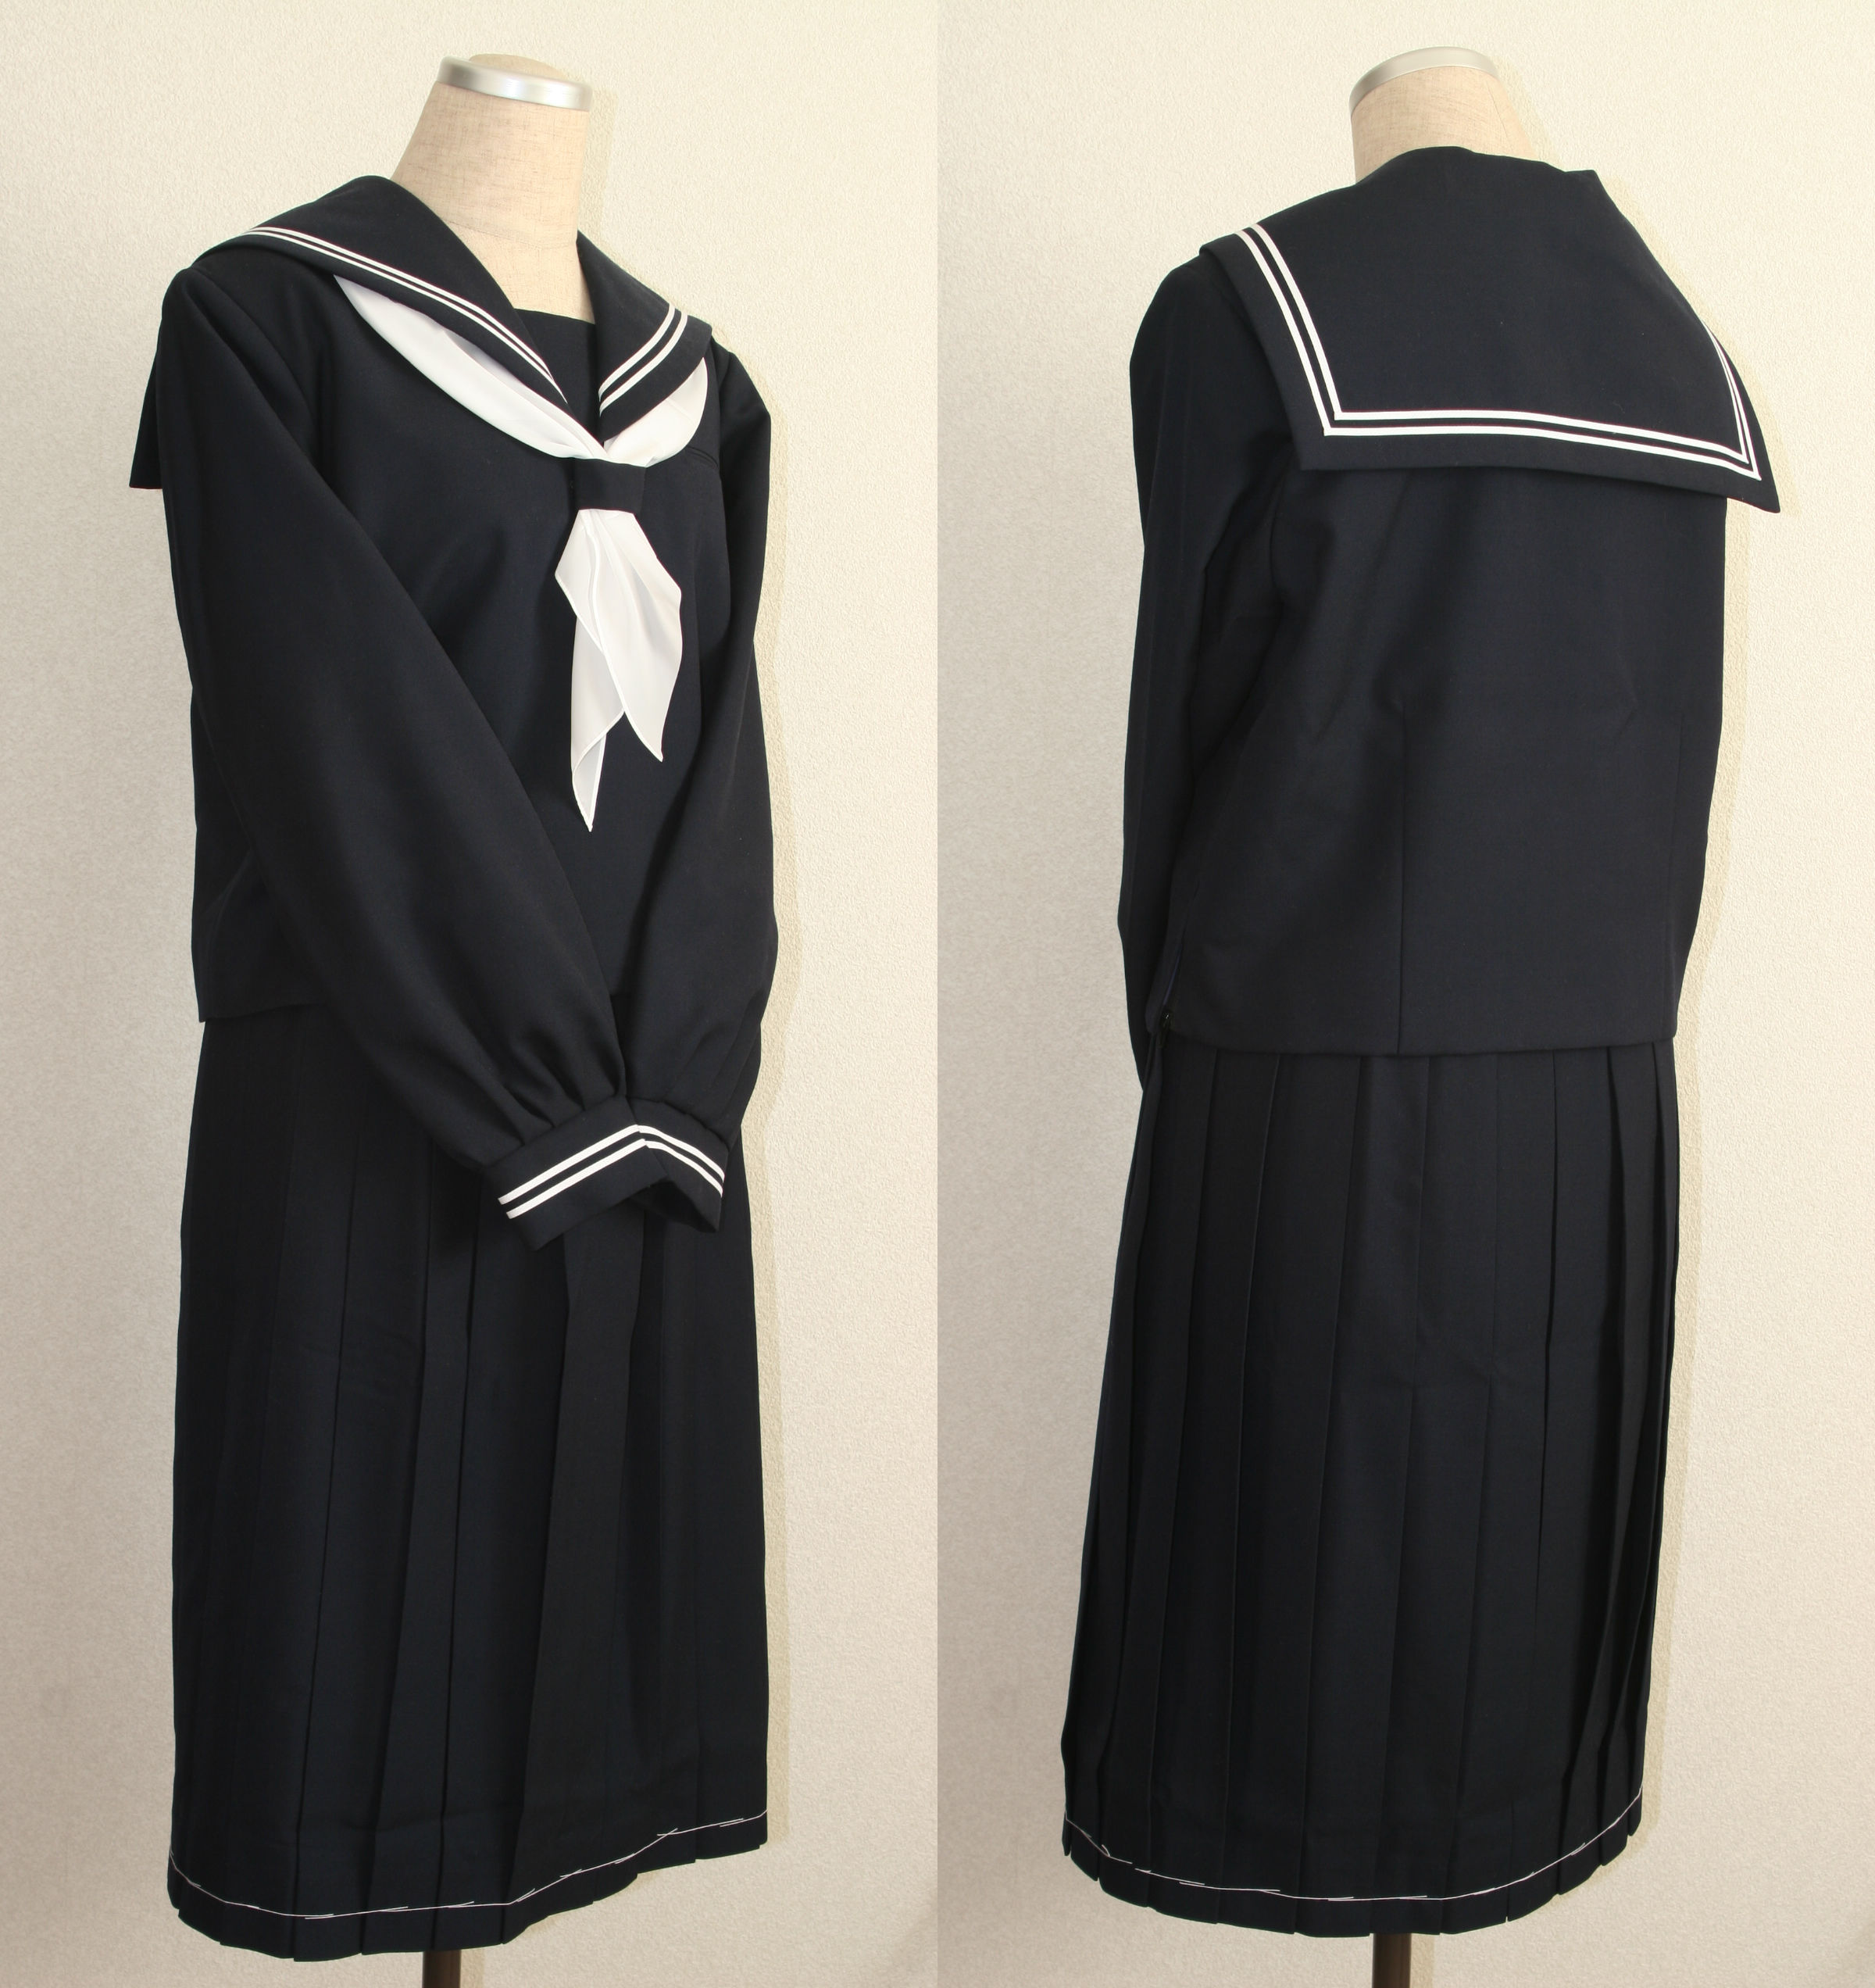 Sailor-fuku for winter